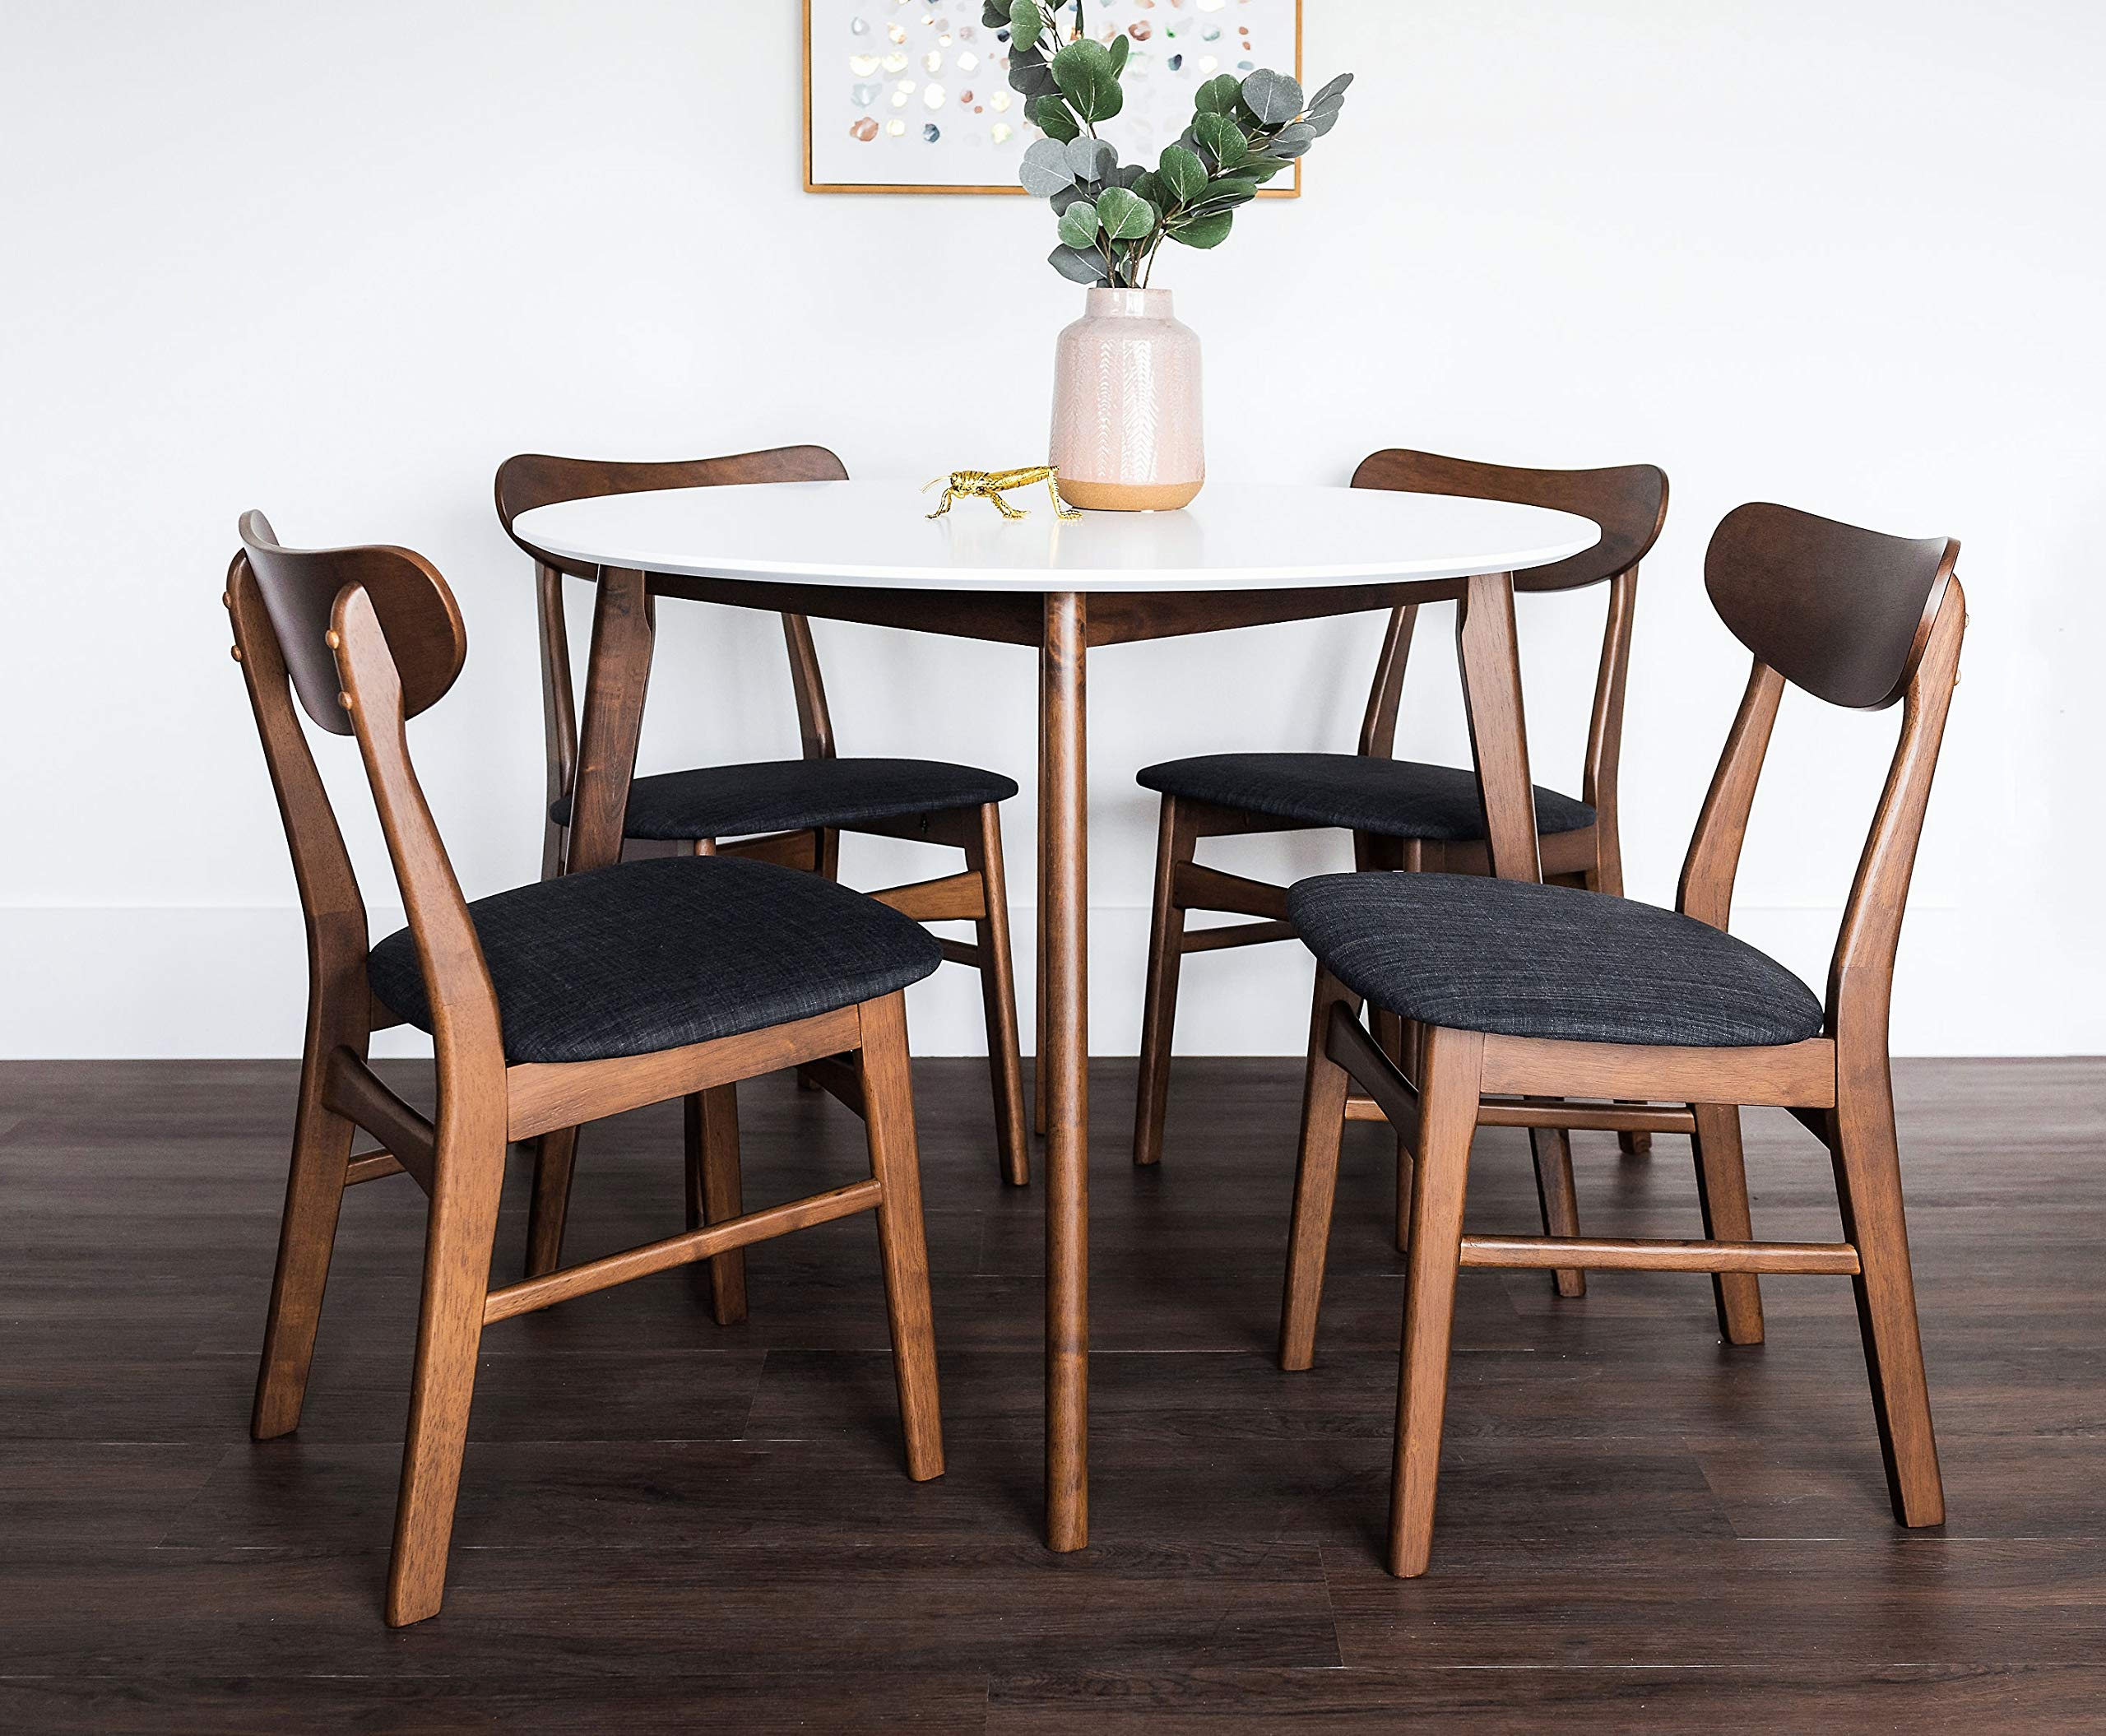 Modern Dining Room Table And Chairs Chair Pads Amp Cushions